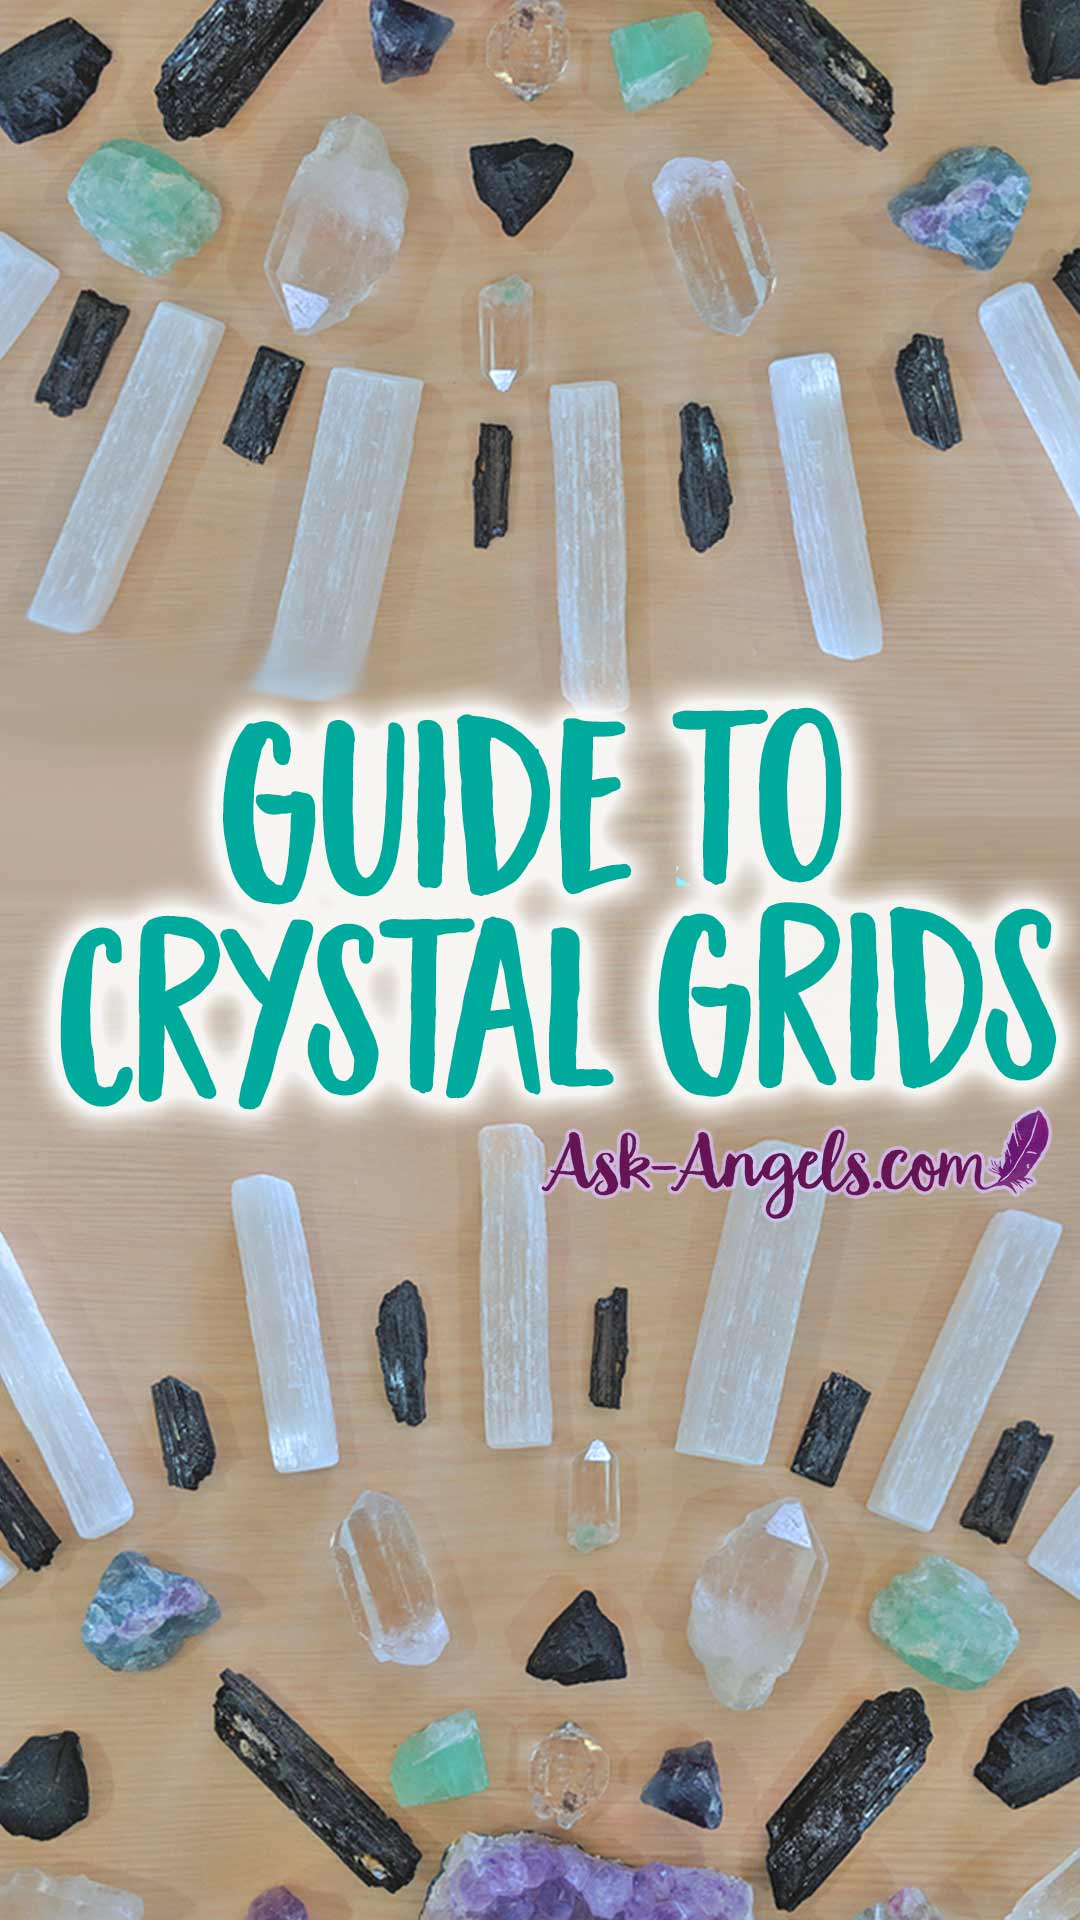 Crystal Grids - What is a crystal grid and how can you make one? Find out in this complete guide